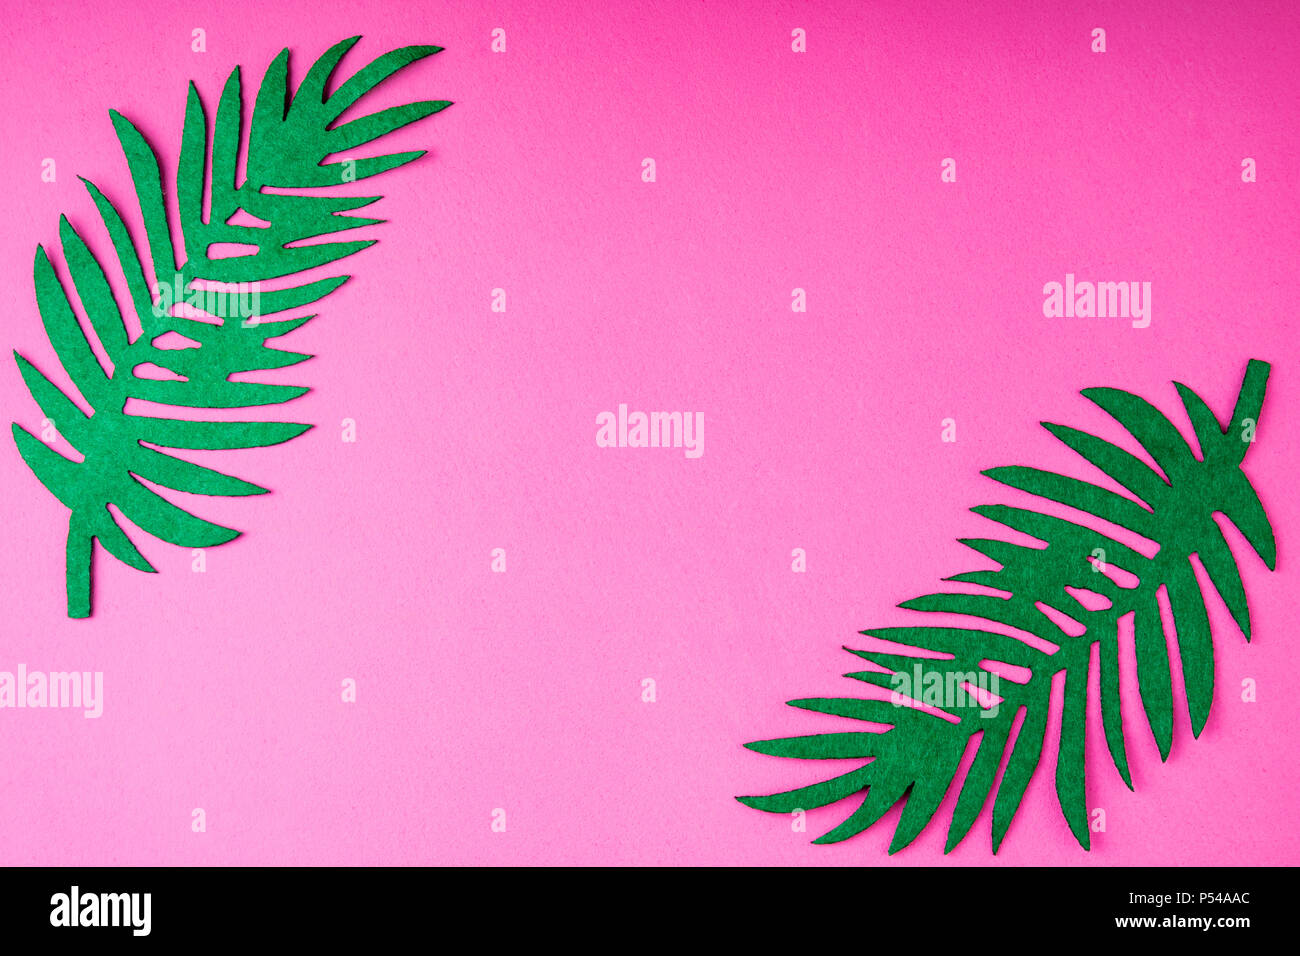 Creative Summer Trendy Background With Palm Leaves On Pink Handmade Idea Art Crafts For Kids In Camp Arts Top View